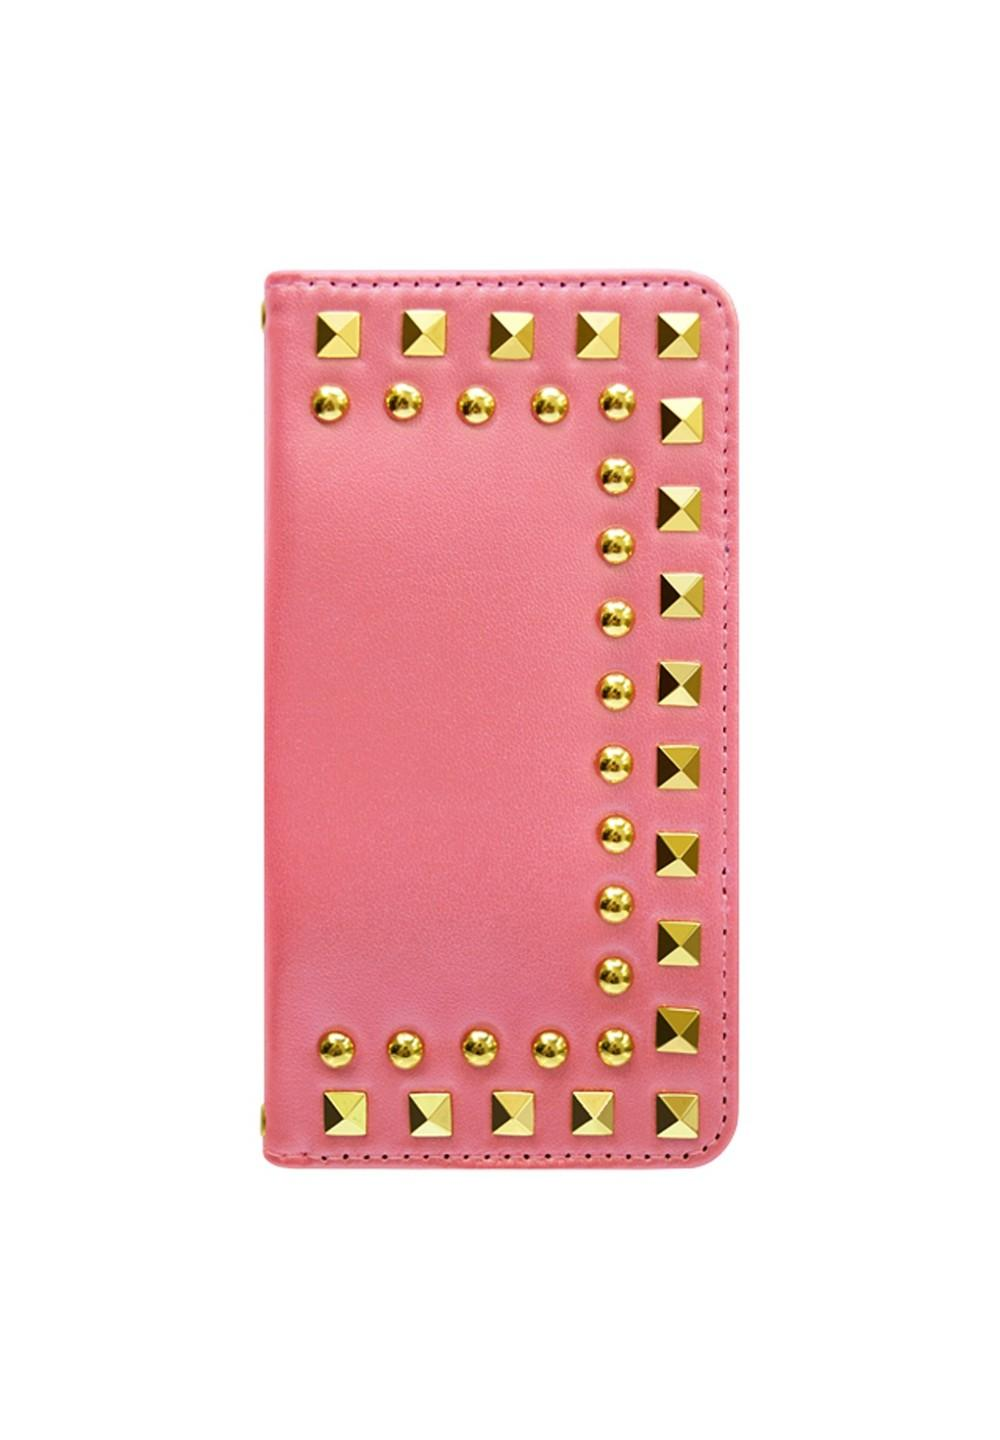 UNiCASE BLUE LABEL / Studded Diary Pink for iPhone6s/6 - #1